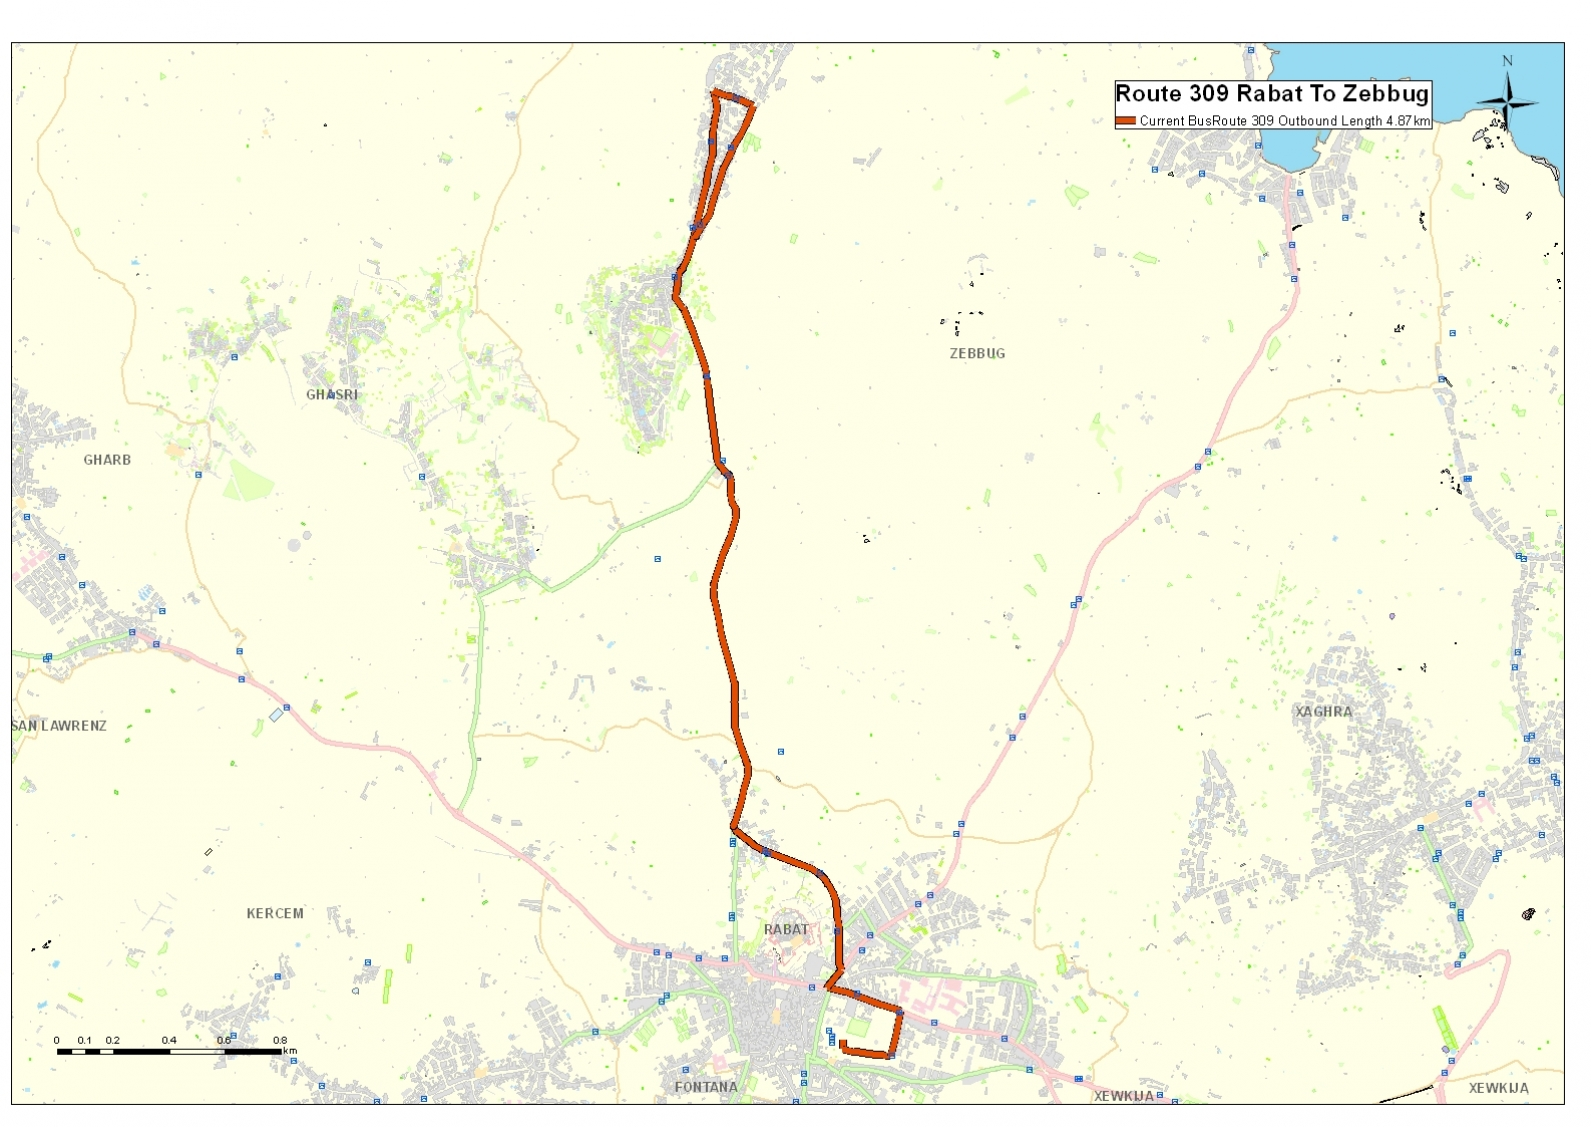 Land-current-network-routes-and-schedules-Gozo-18